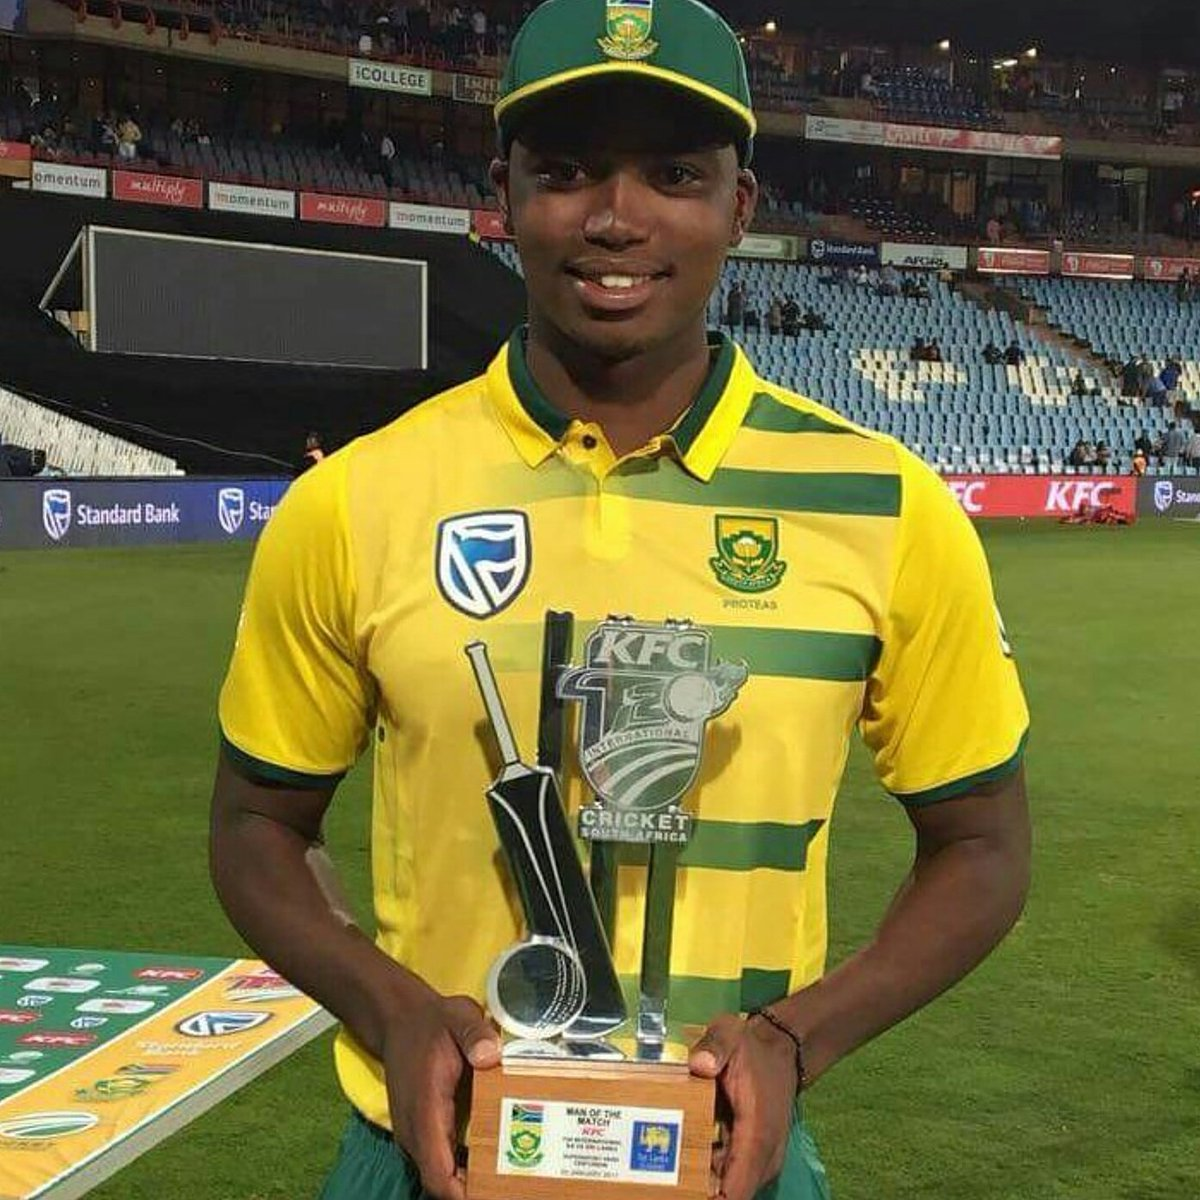 A star is born!  NgidiLungi who earbed Man of the Match on debut to help Proteas seal a 19 run win